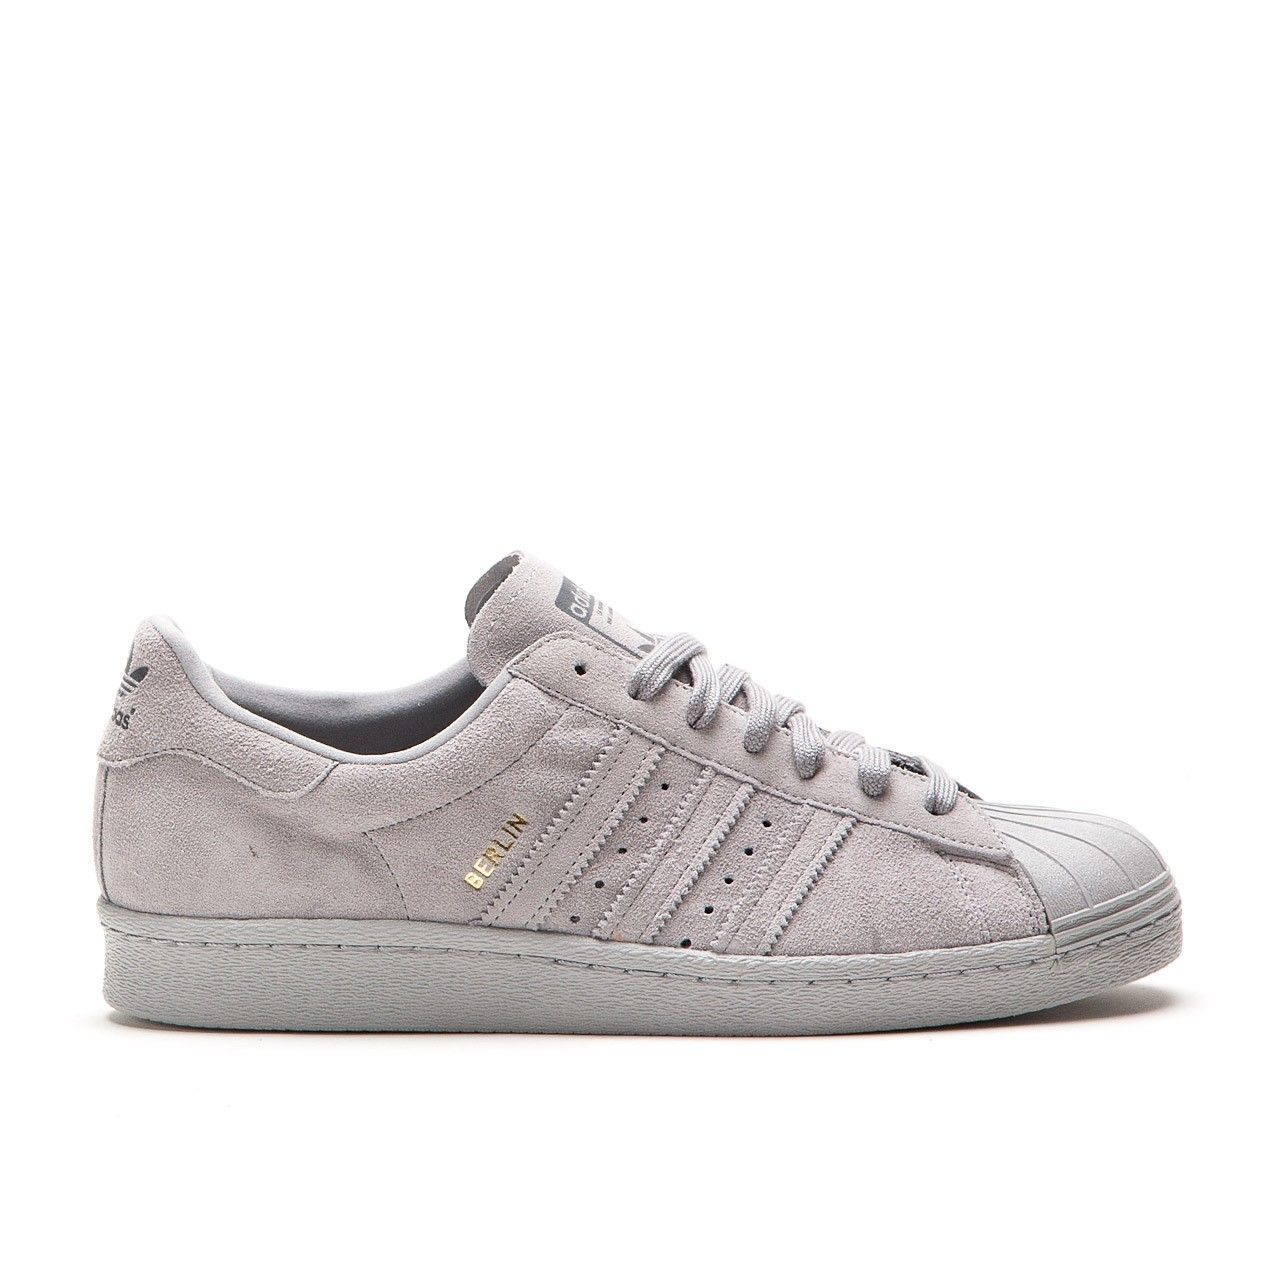 Adidas Superstar 80s City Series \